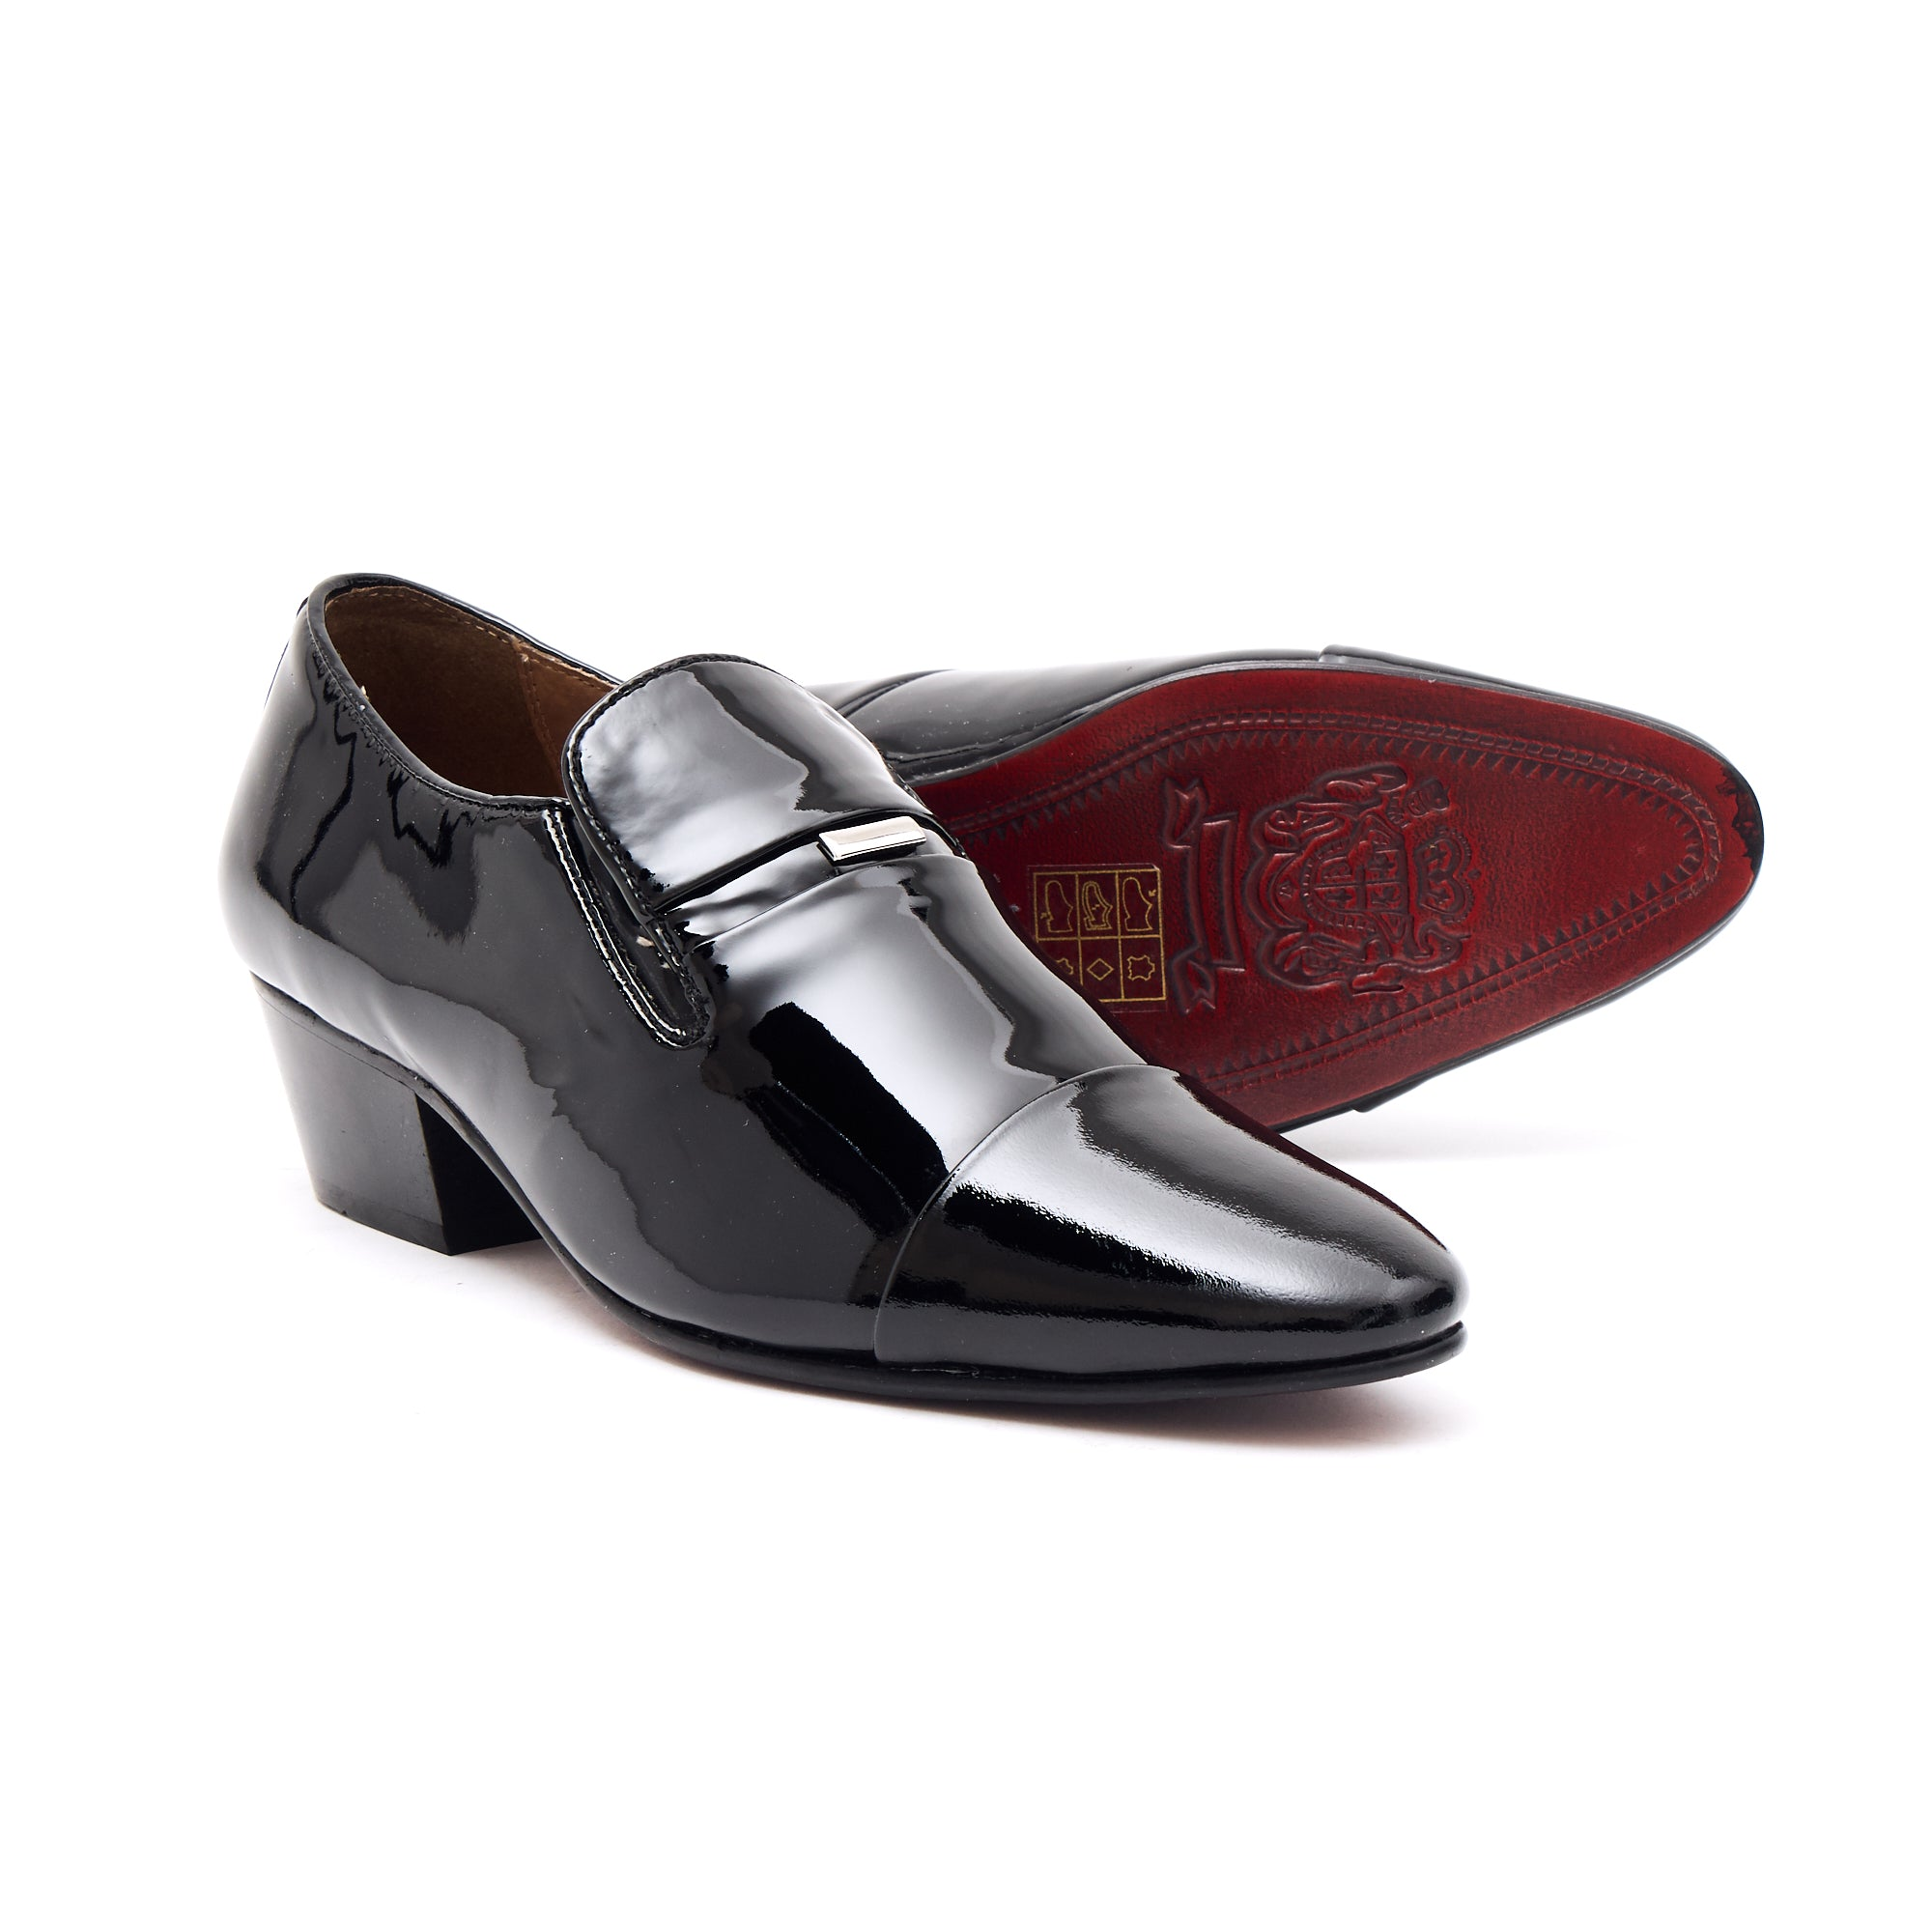 Mens Leather Cuban Heel Patent Shoes - 33478 Black